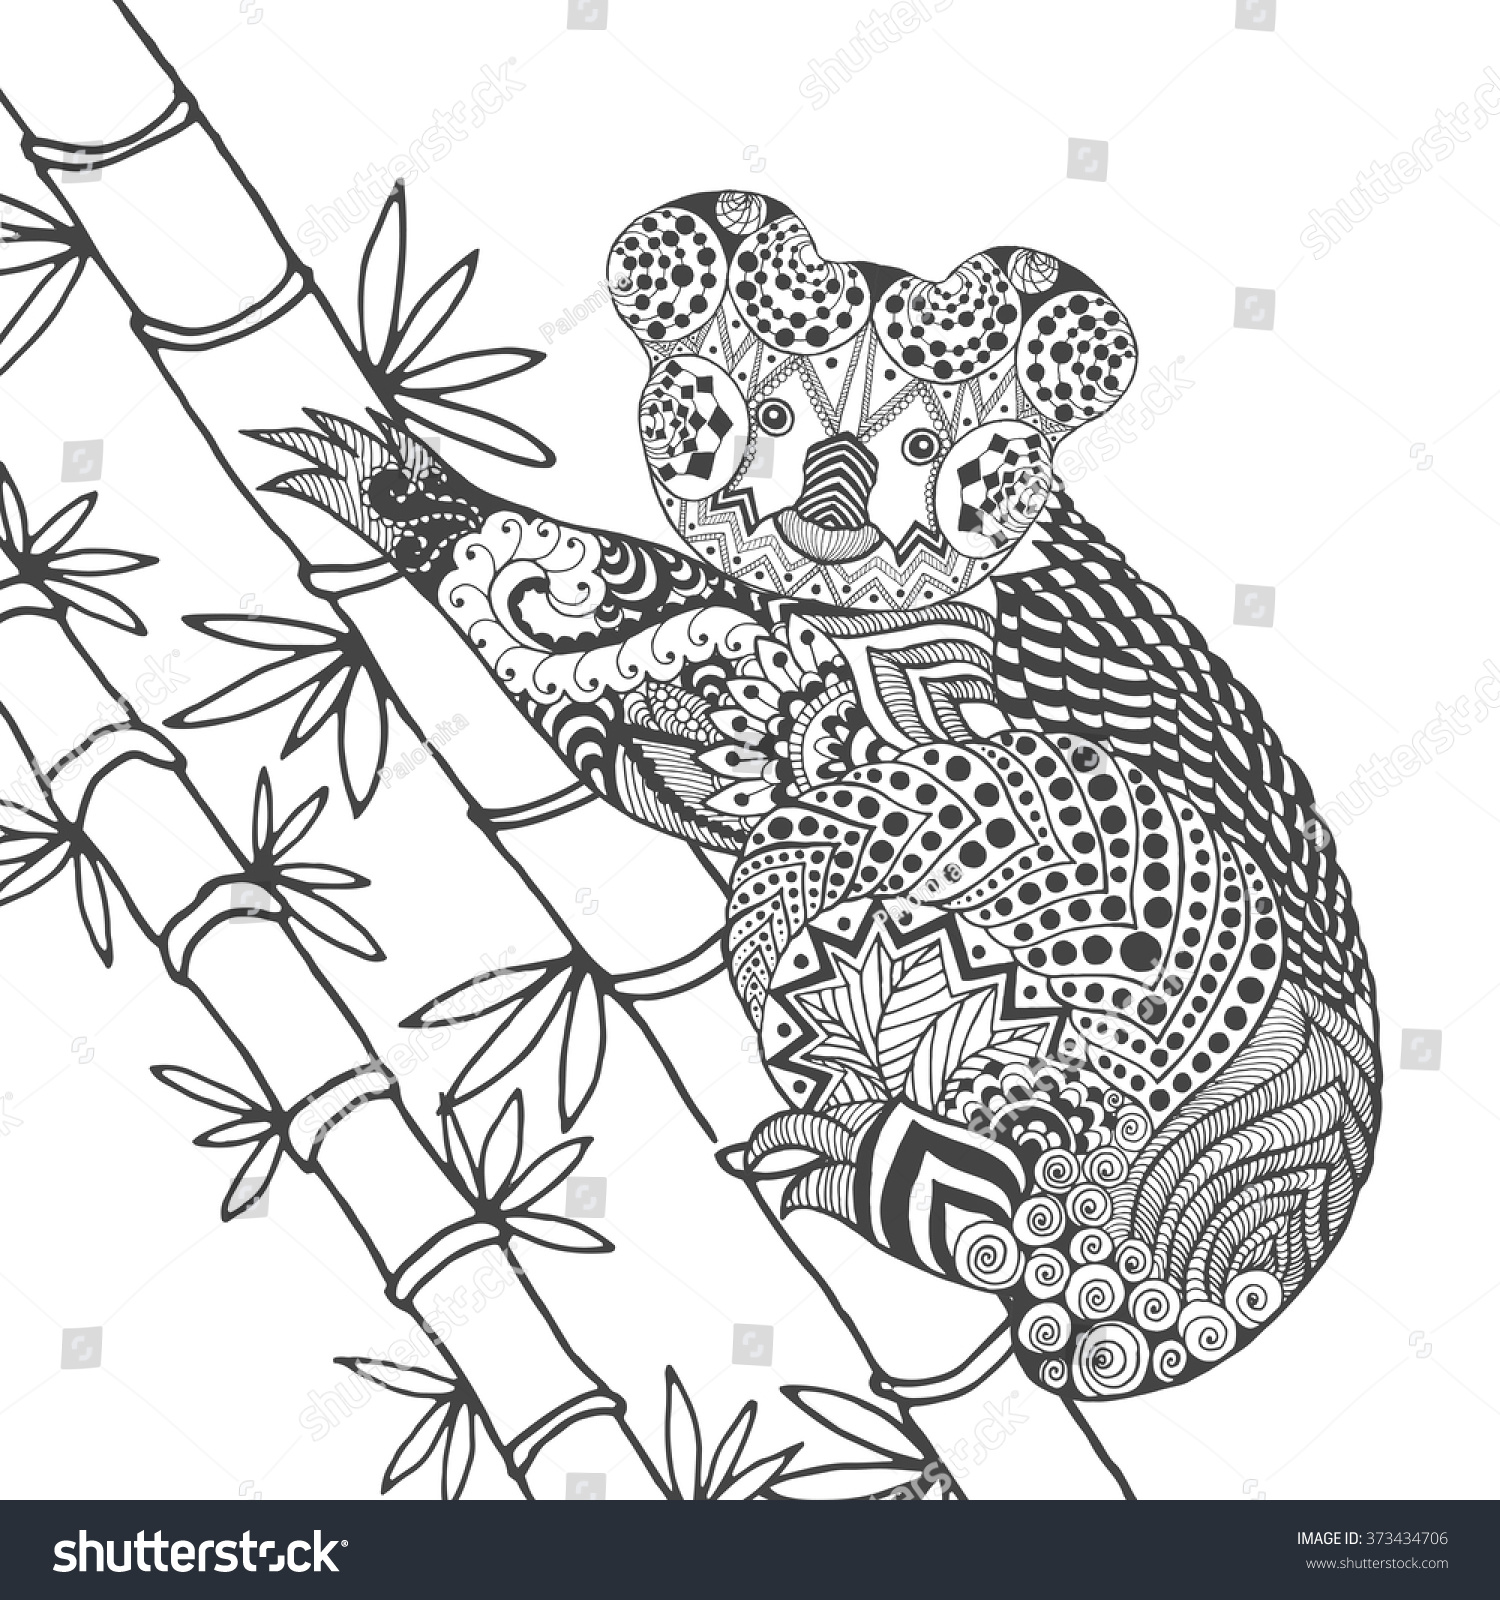 koala on tree coloring page animals stock vector 373434706